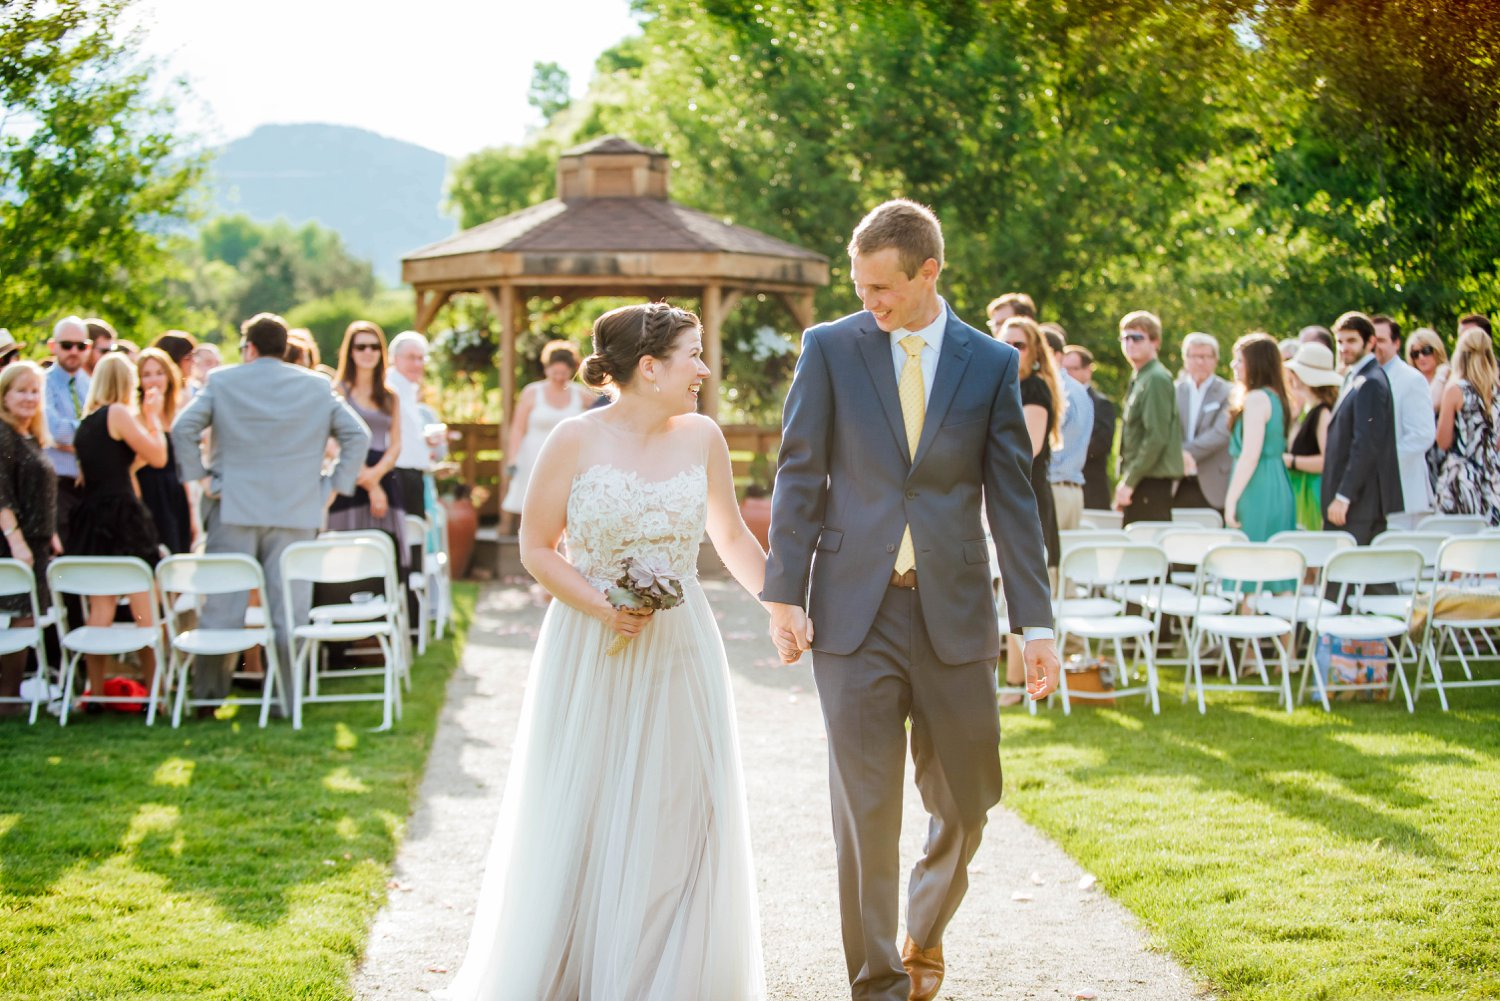 The bride and groom looks so happy as they walk back down the aisle at the Denver Botanic Gardens ceremony.Photo by Maddie Mae Photography